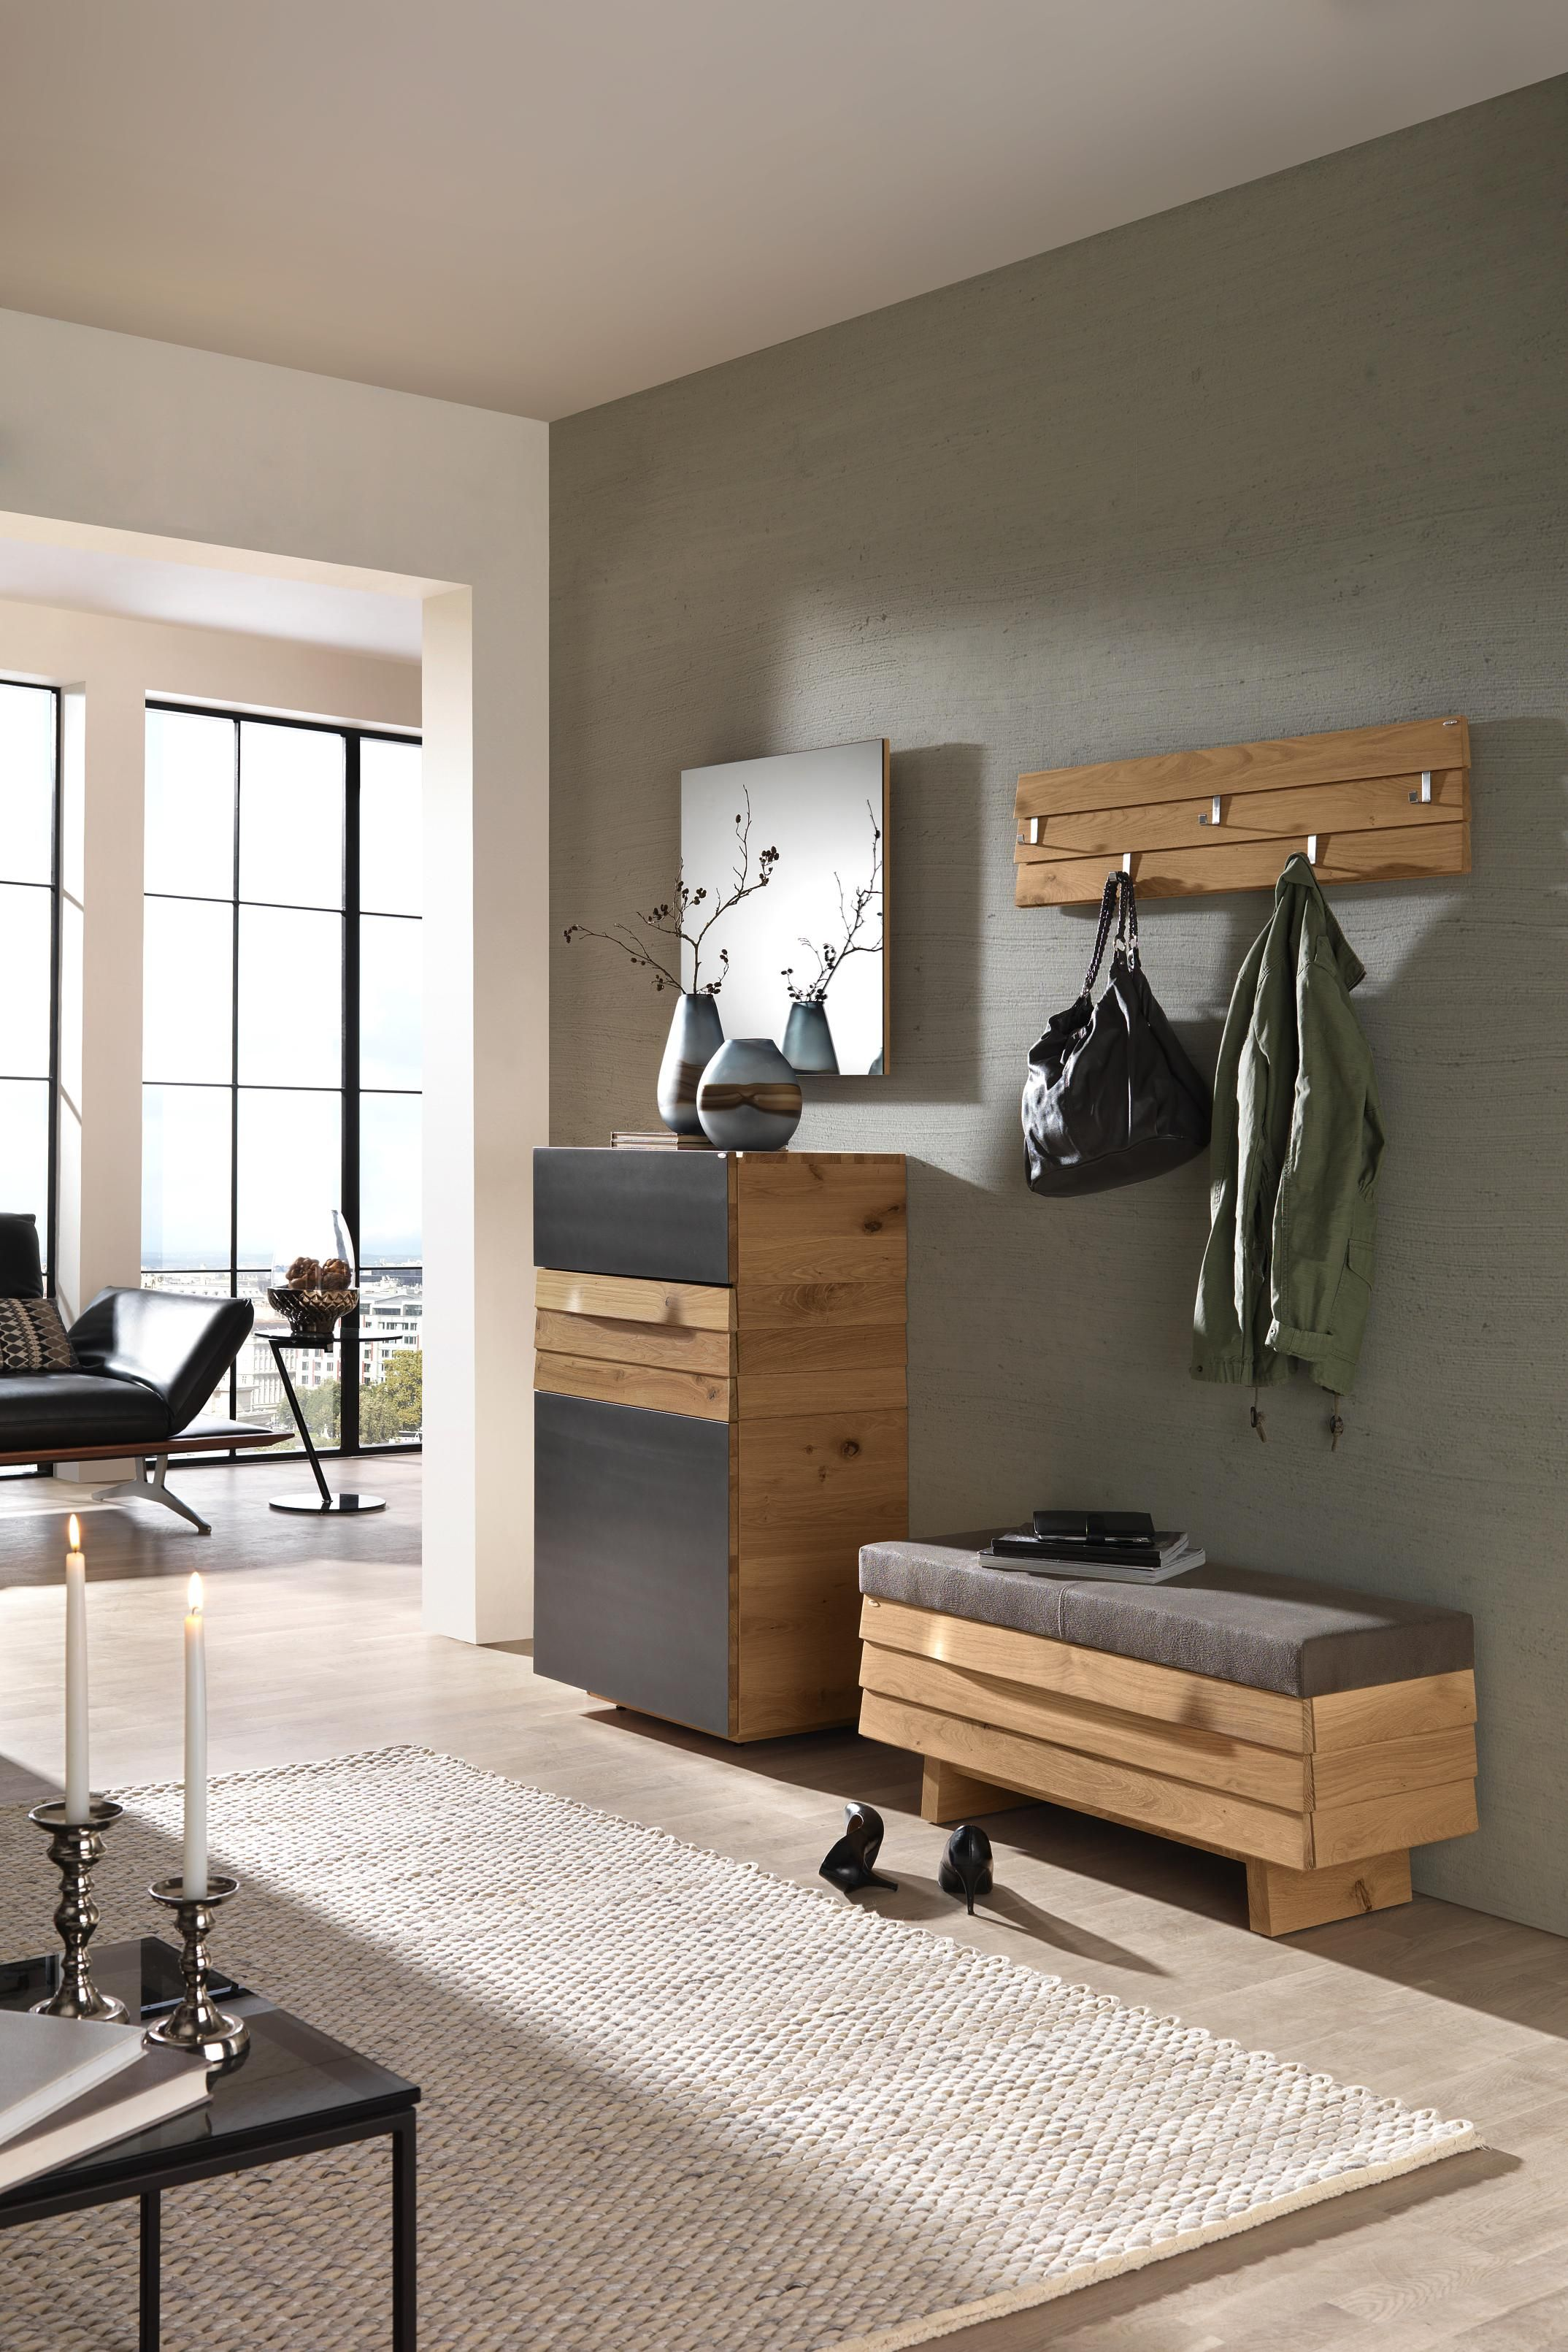 garderobe von voglauer gaderobe pinterest garderoben. Black Bedroom Furniture Sets. Home Design Ideas